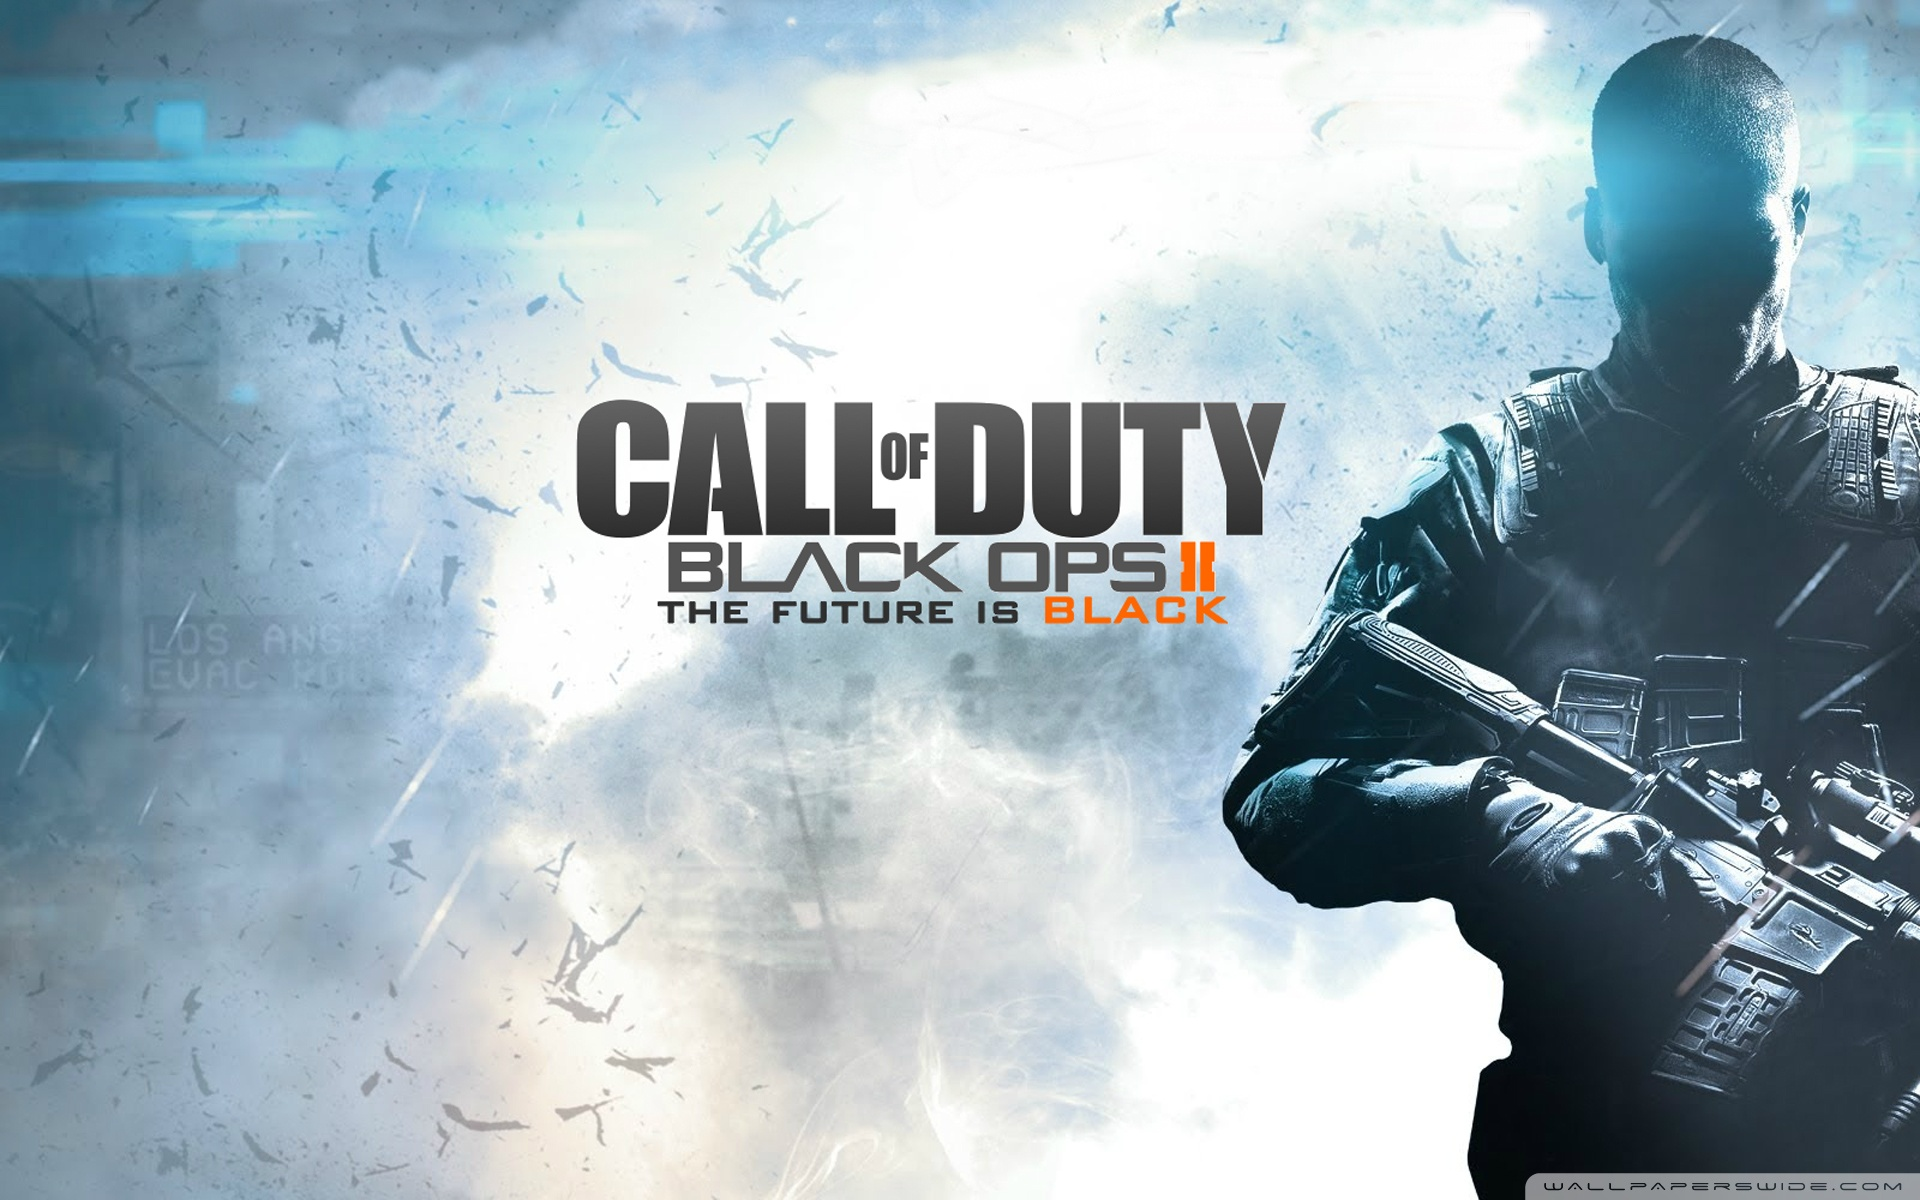 WallpapersWide.com | Call Of Duty HD Desktop Wallpapers for ...